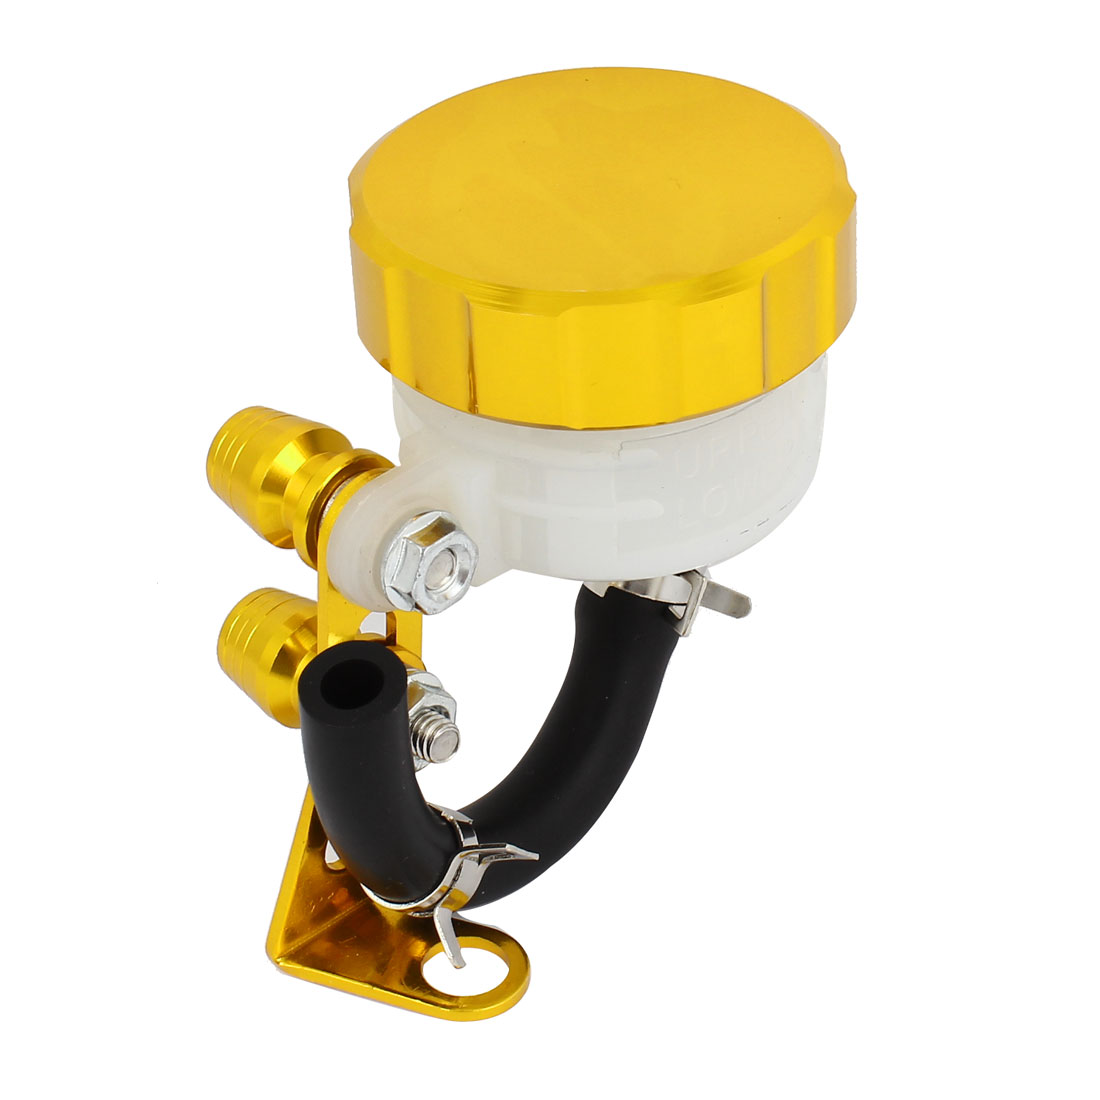 Gold Tone Plastic Braking System Master Brake Reservoir Oil Cup for Motorbike Motorcycle